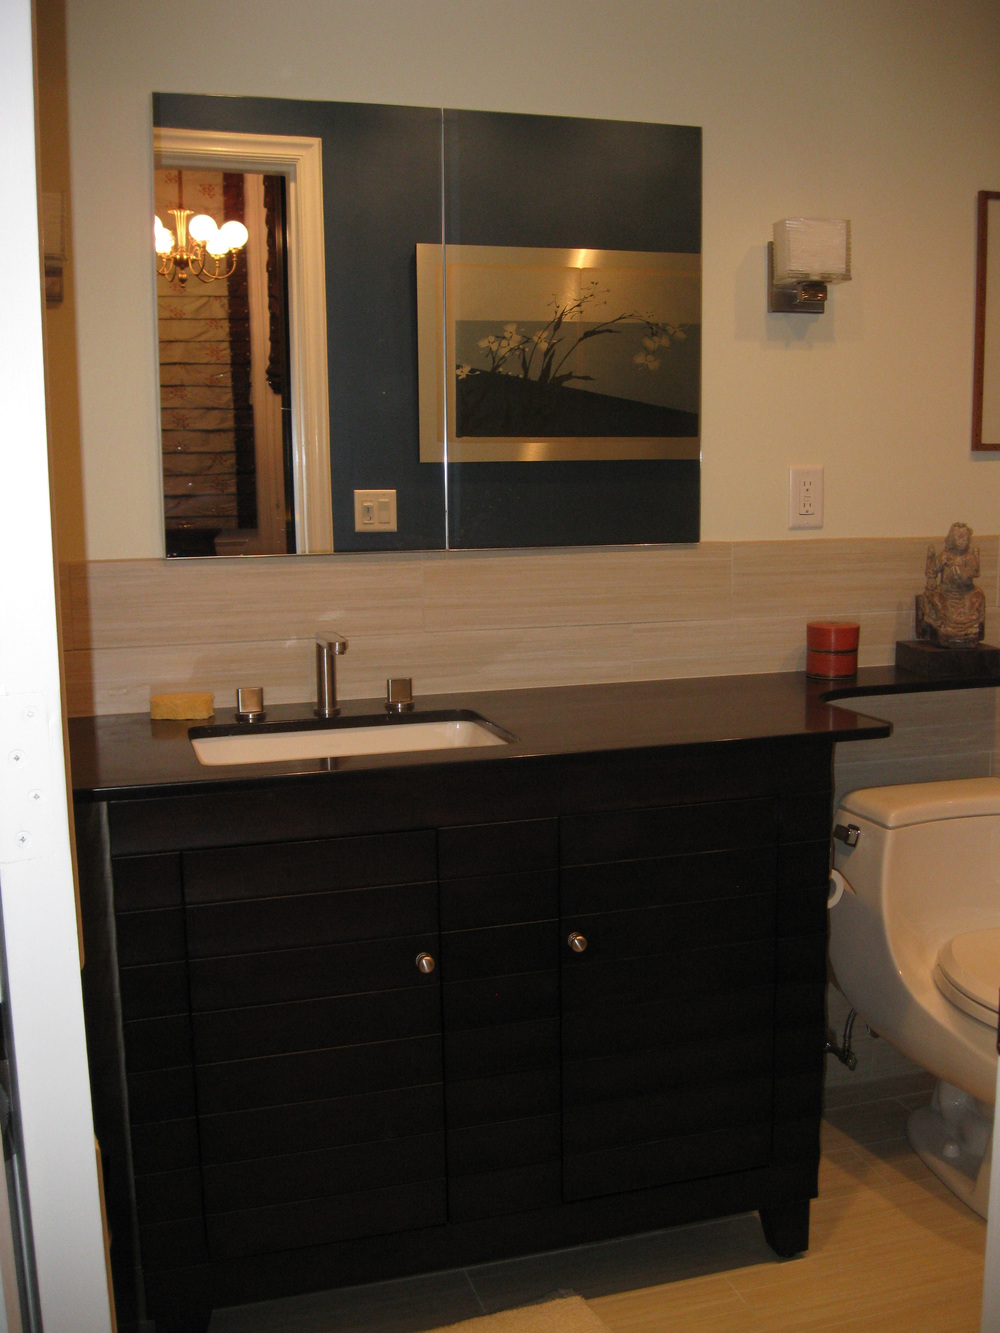 1 Unique Vanity Under Double Medicine Cabinets.JPG